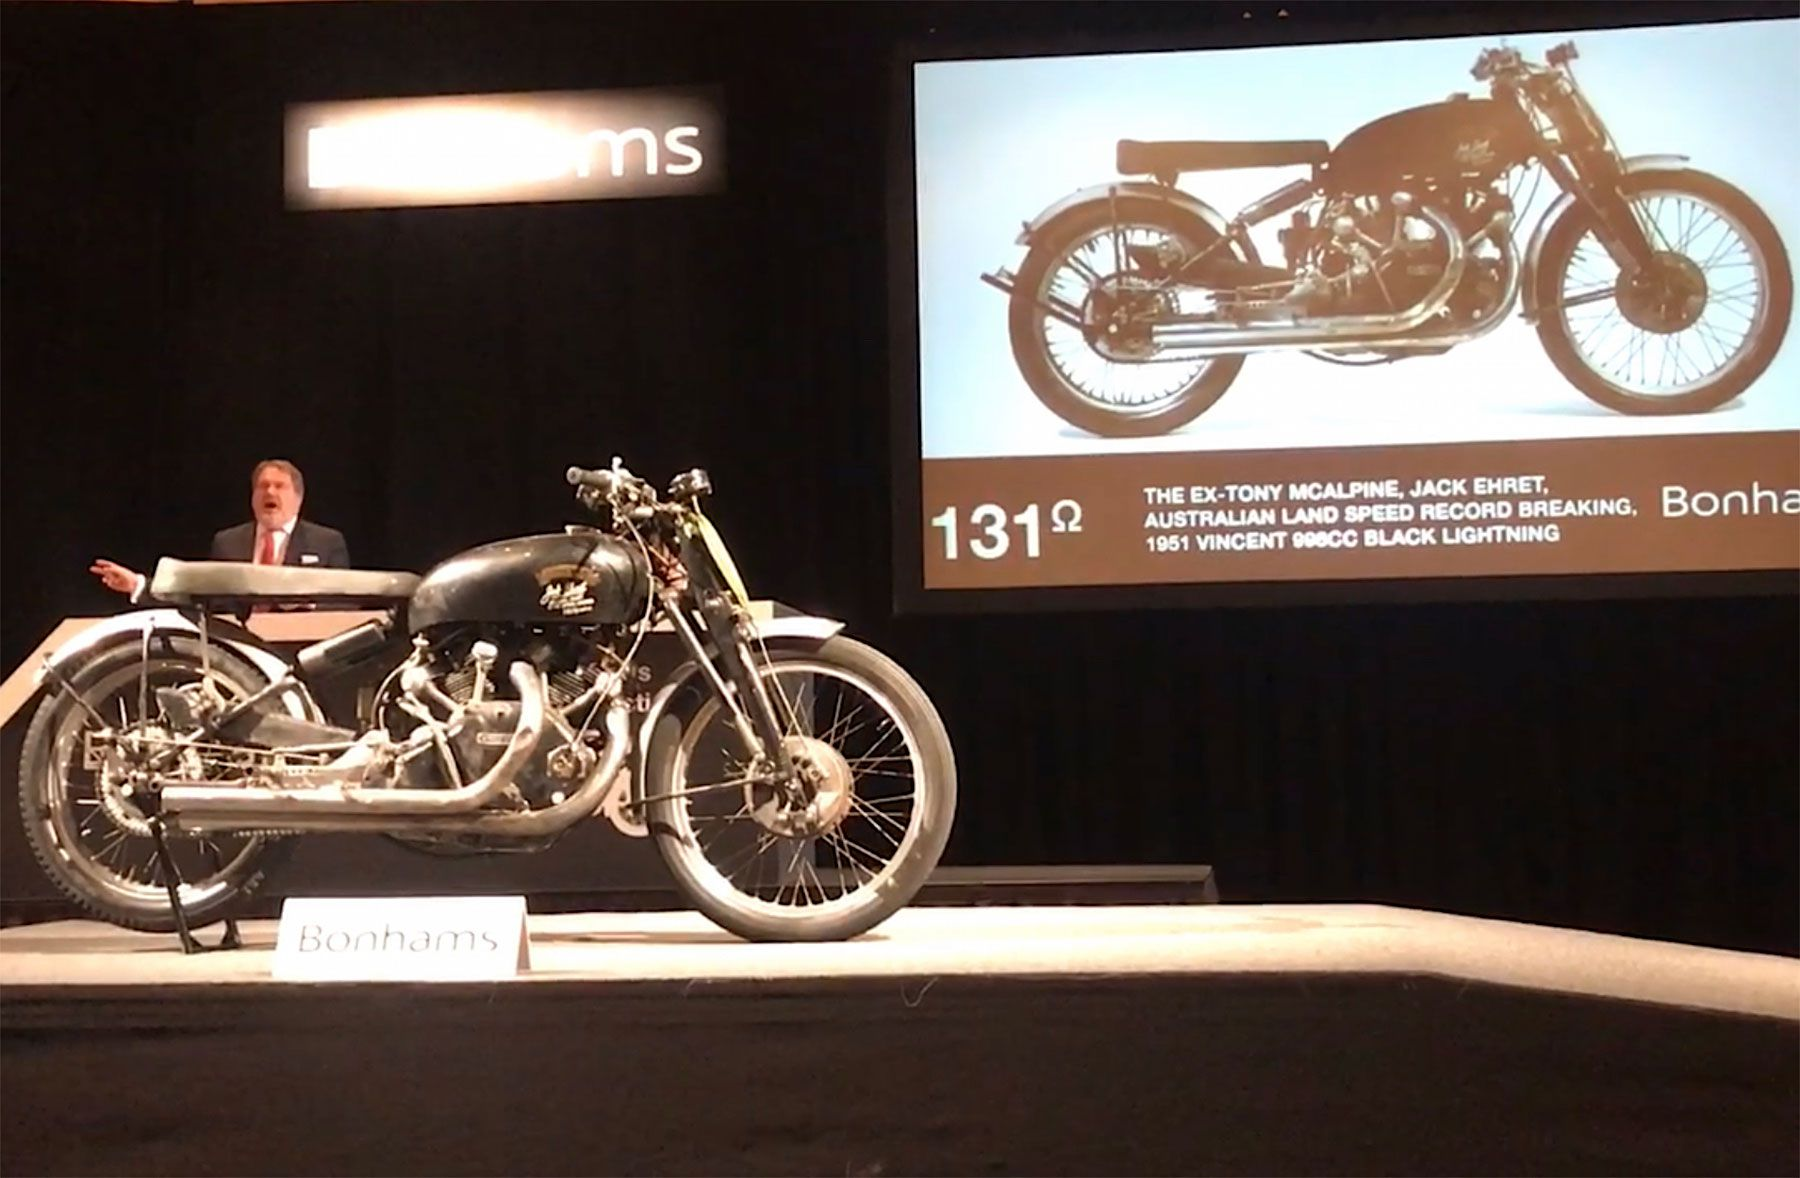 1. And the most expensive motorcycle is: this 1951 Vincent Black Lightning.